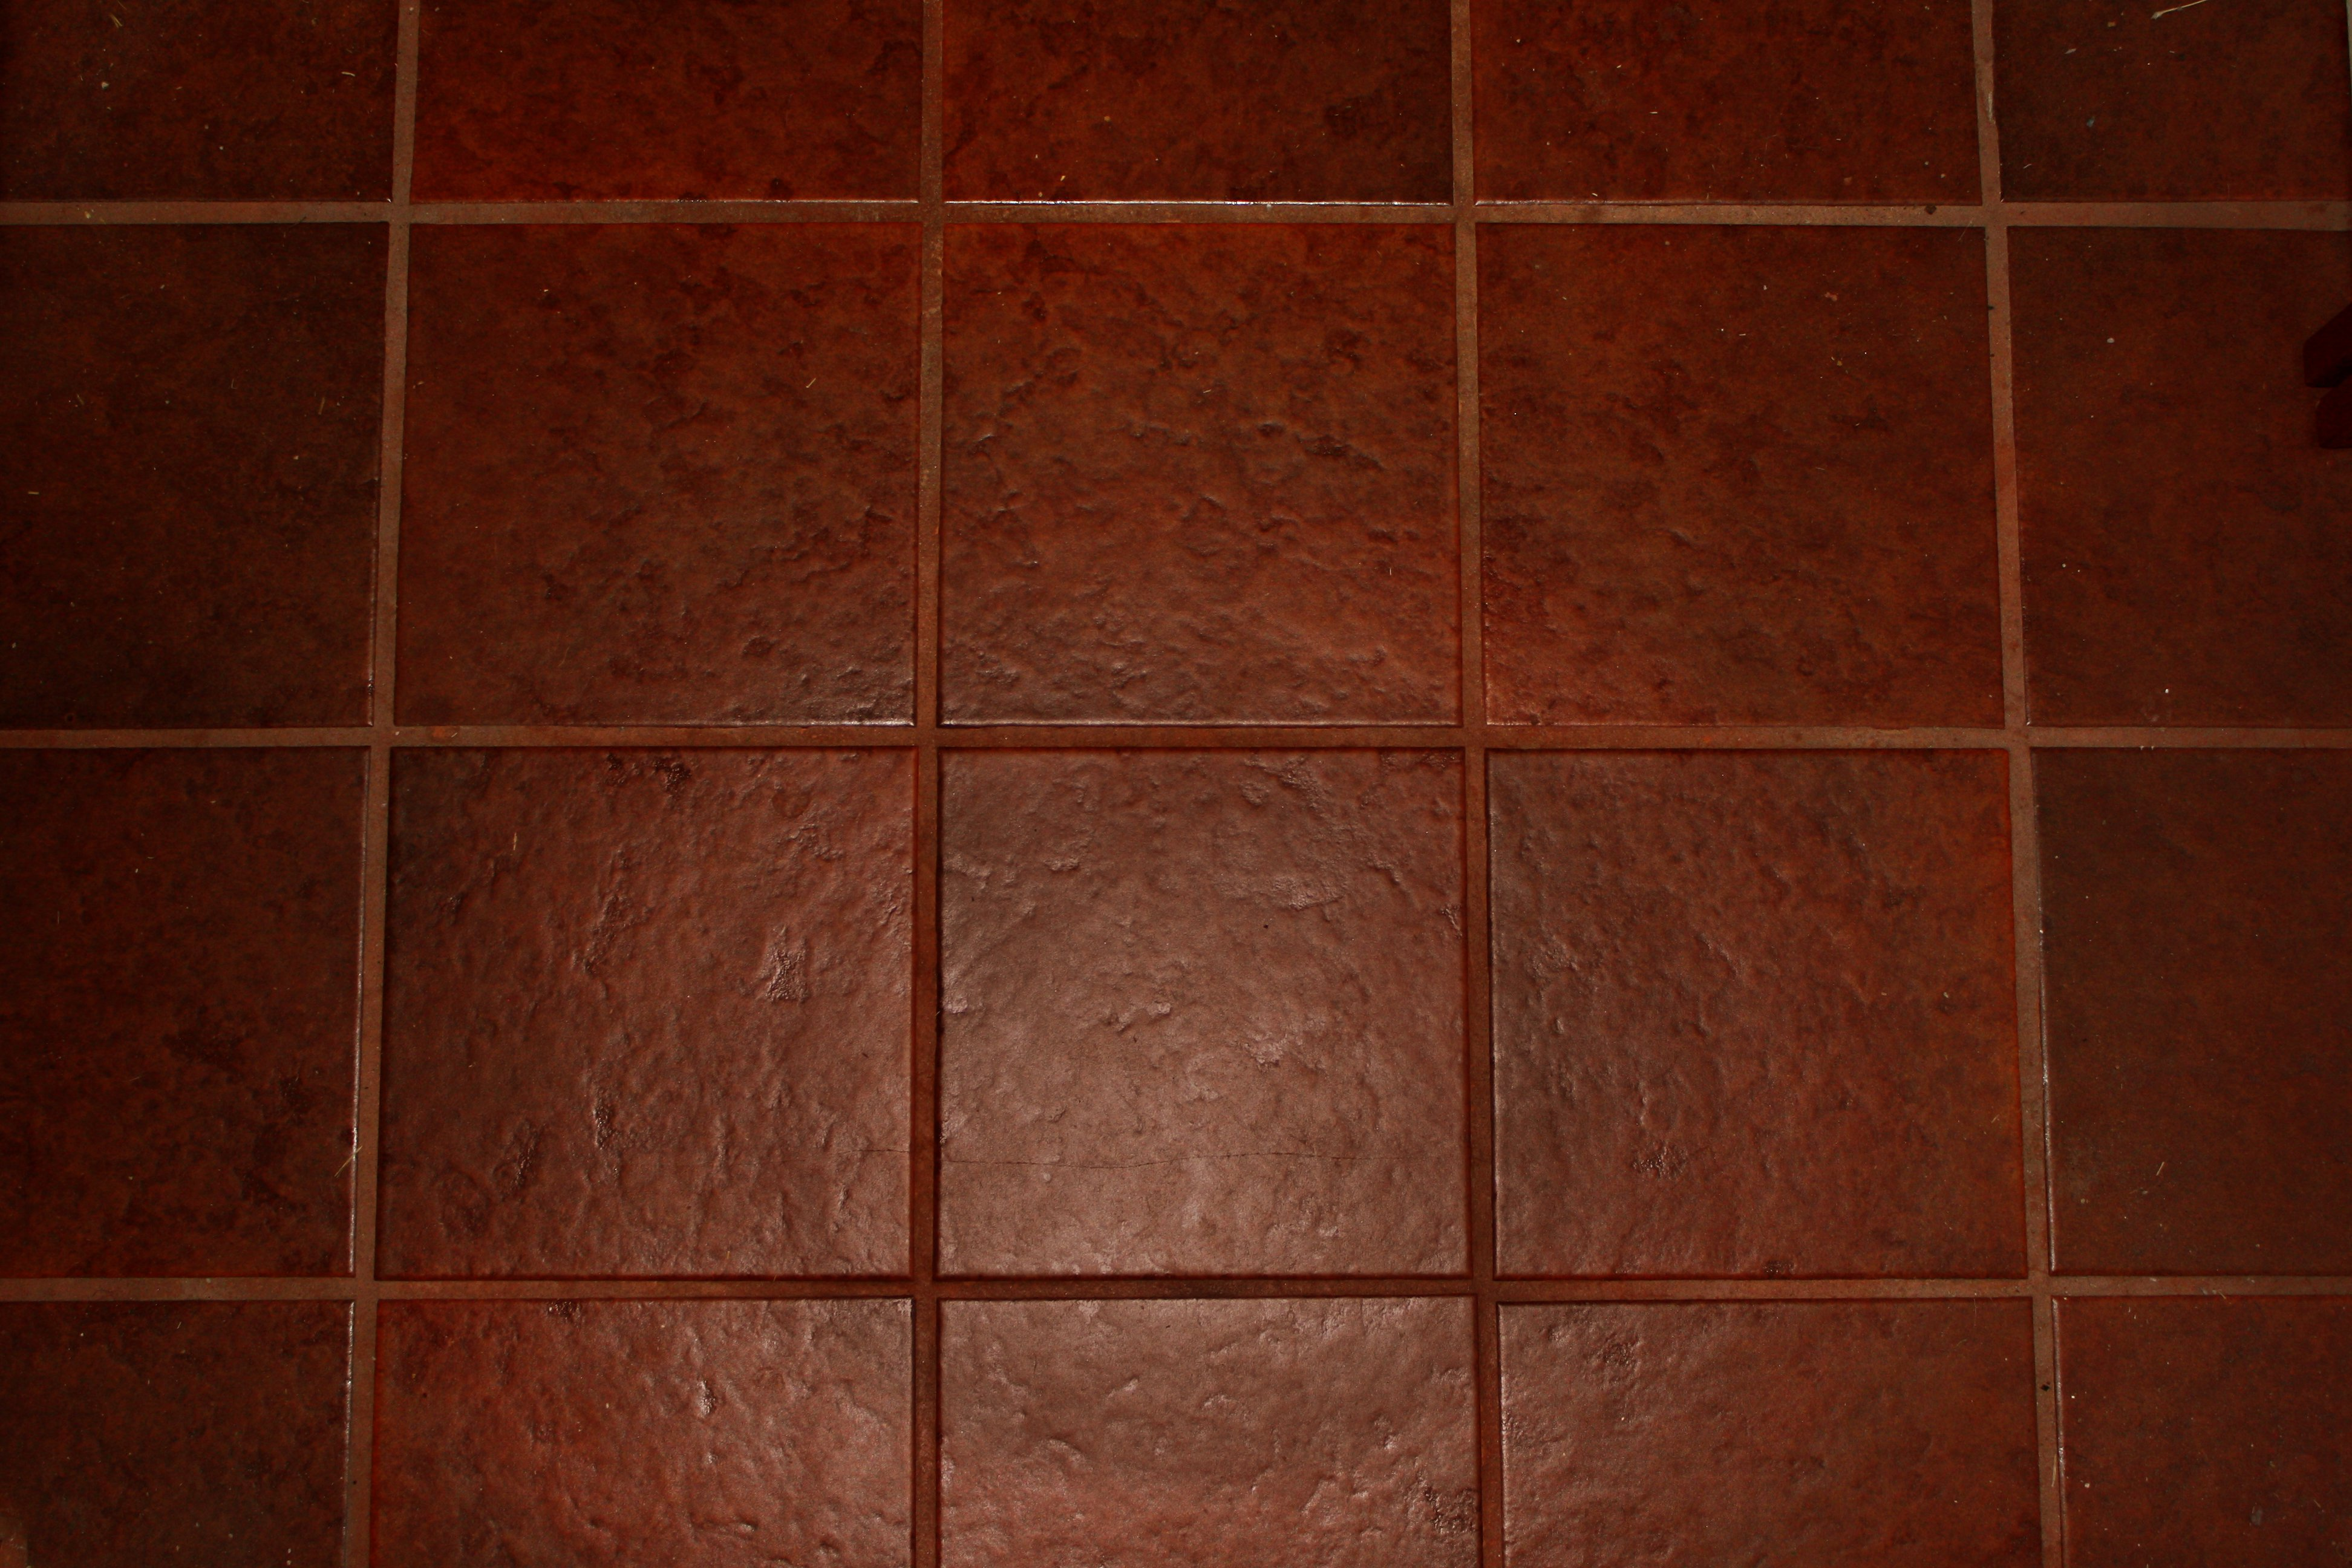 Flooring over tile in the bathroom